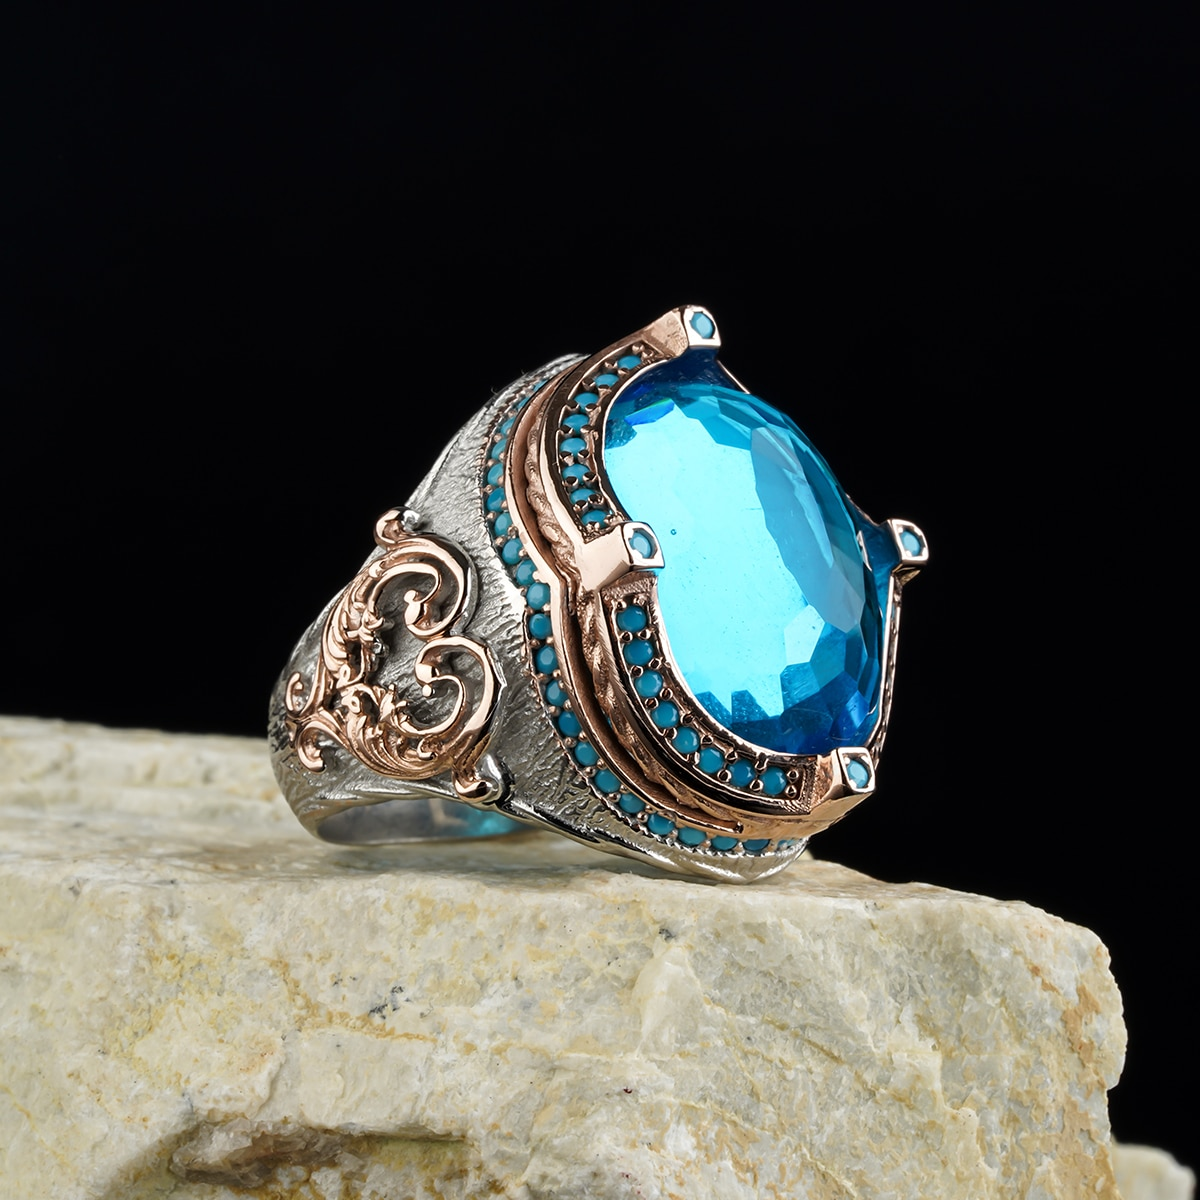 custom Jewelry Guaranteed High-quality 925 Sterling Silver ZİRCON stone ring   green color  in a luxurious way for men with gif